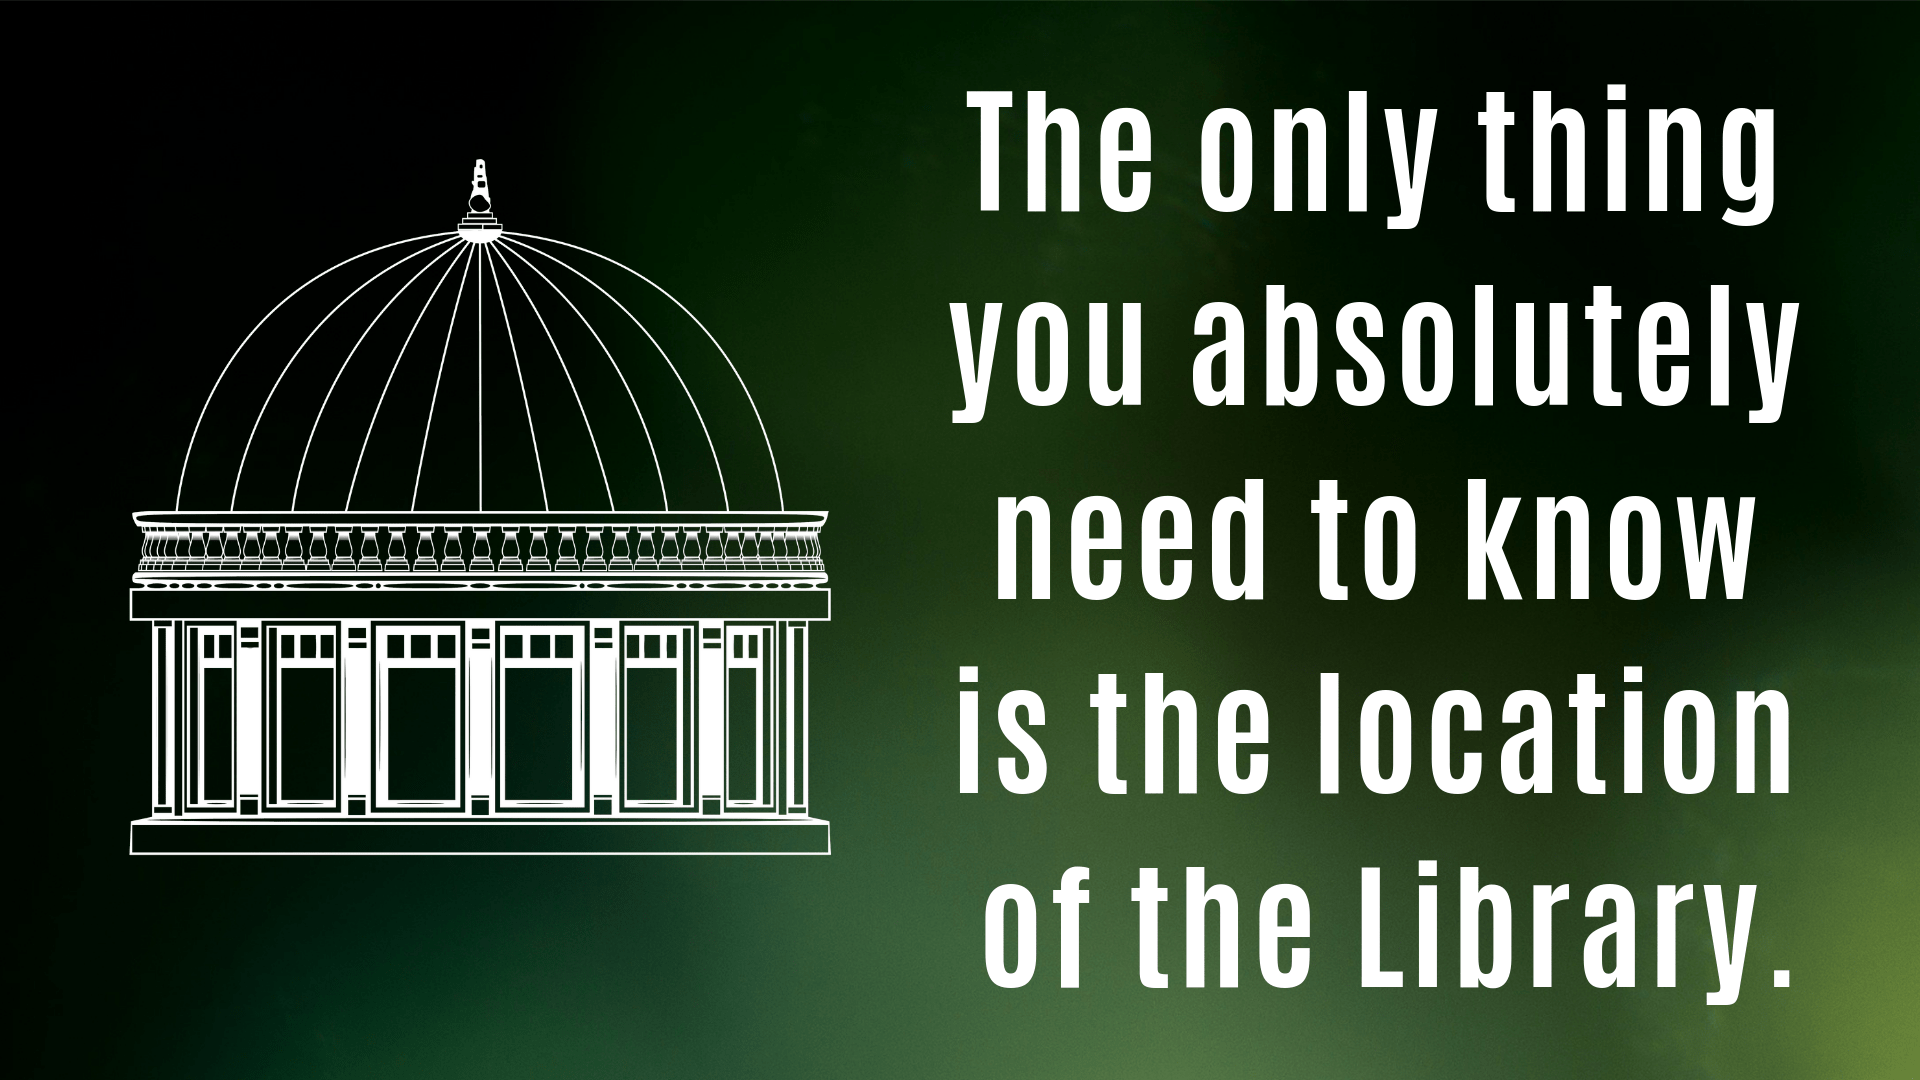 The only thing you absolutely need to know is the location of the Library